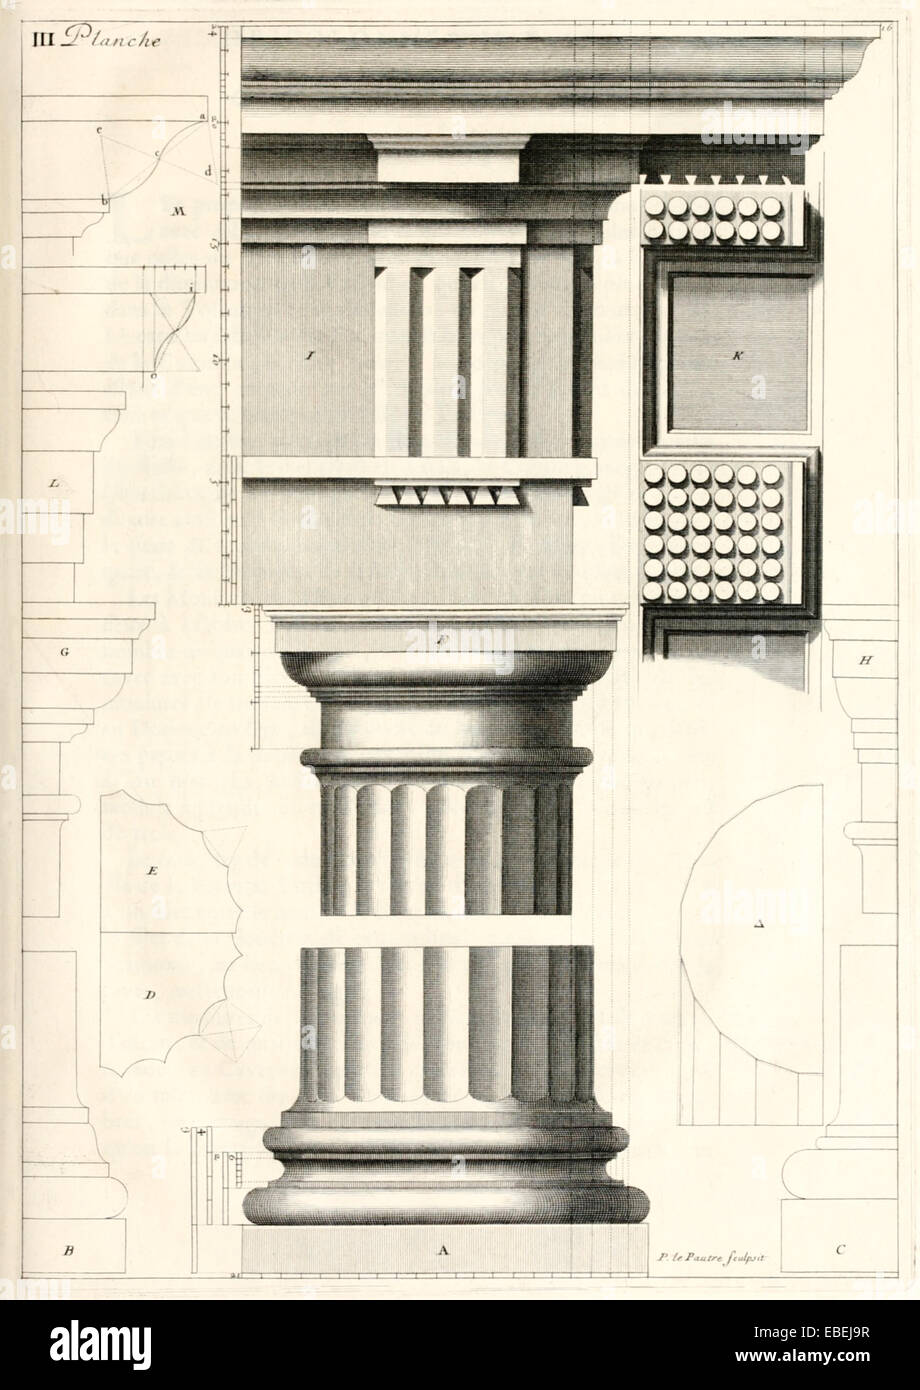 Doric Column by Claude Perrault, French Renaissance architect illustration. See description for more information. - Stock Image